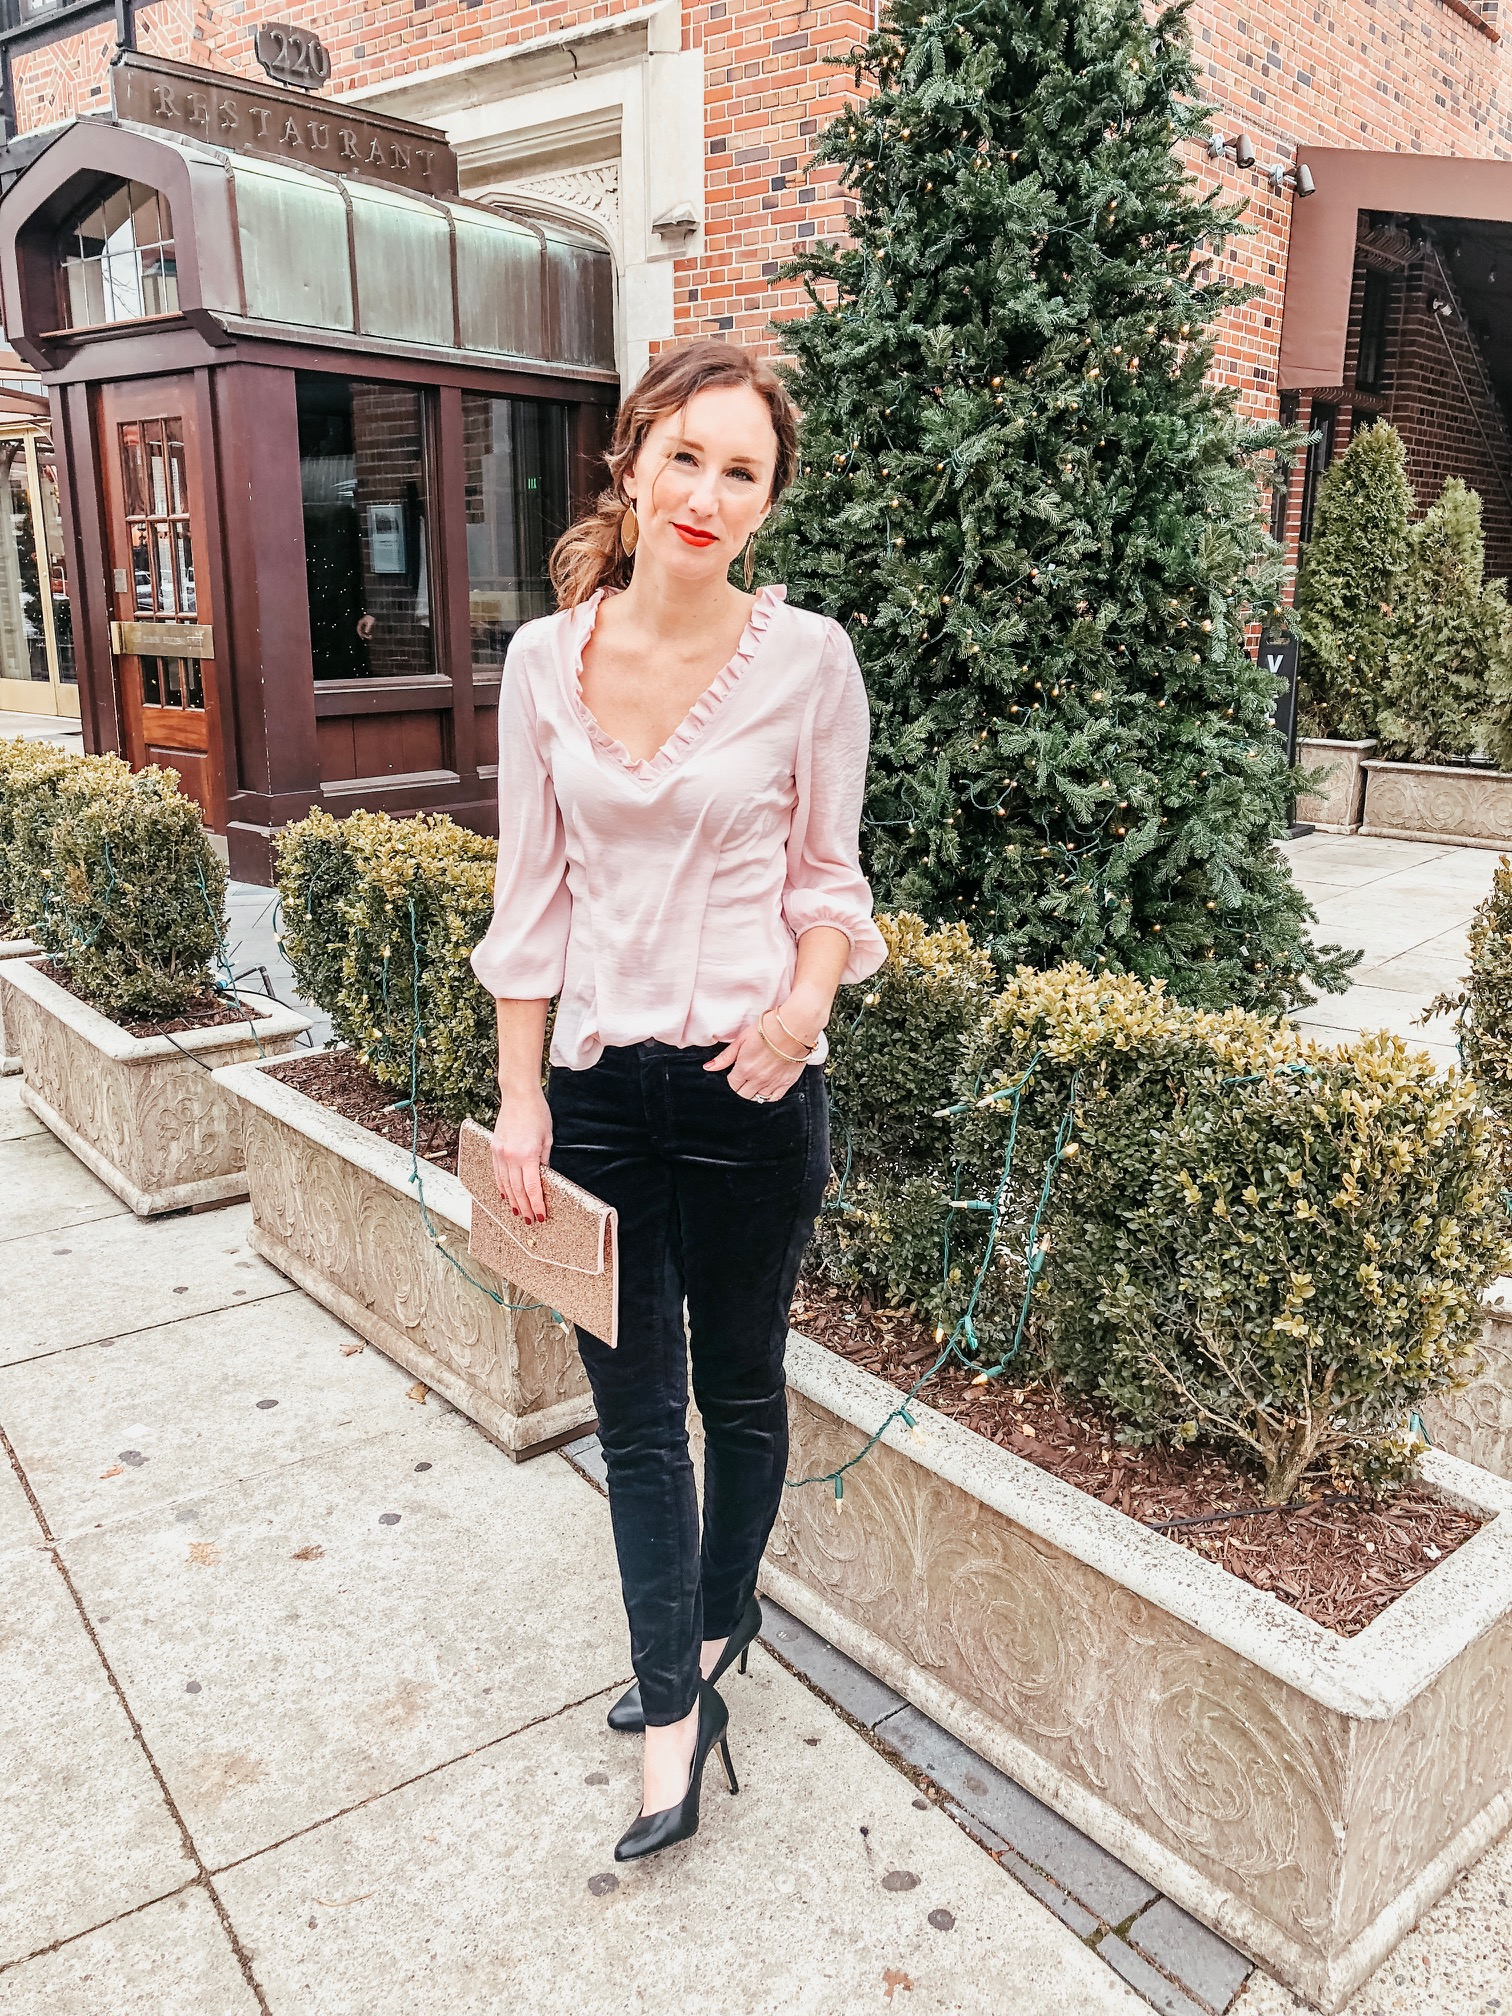 Cute Party Outfit Ideas | Daily Splendor Life and Style Blog | Holiday Party, NYE Party, Going Out, Winter Style #partyoutfit #velvetpants #sparkleclutch #christmasparty #nyeoutfit #winterfashion